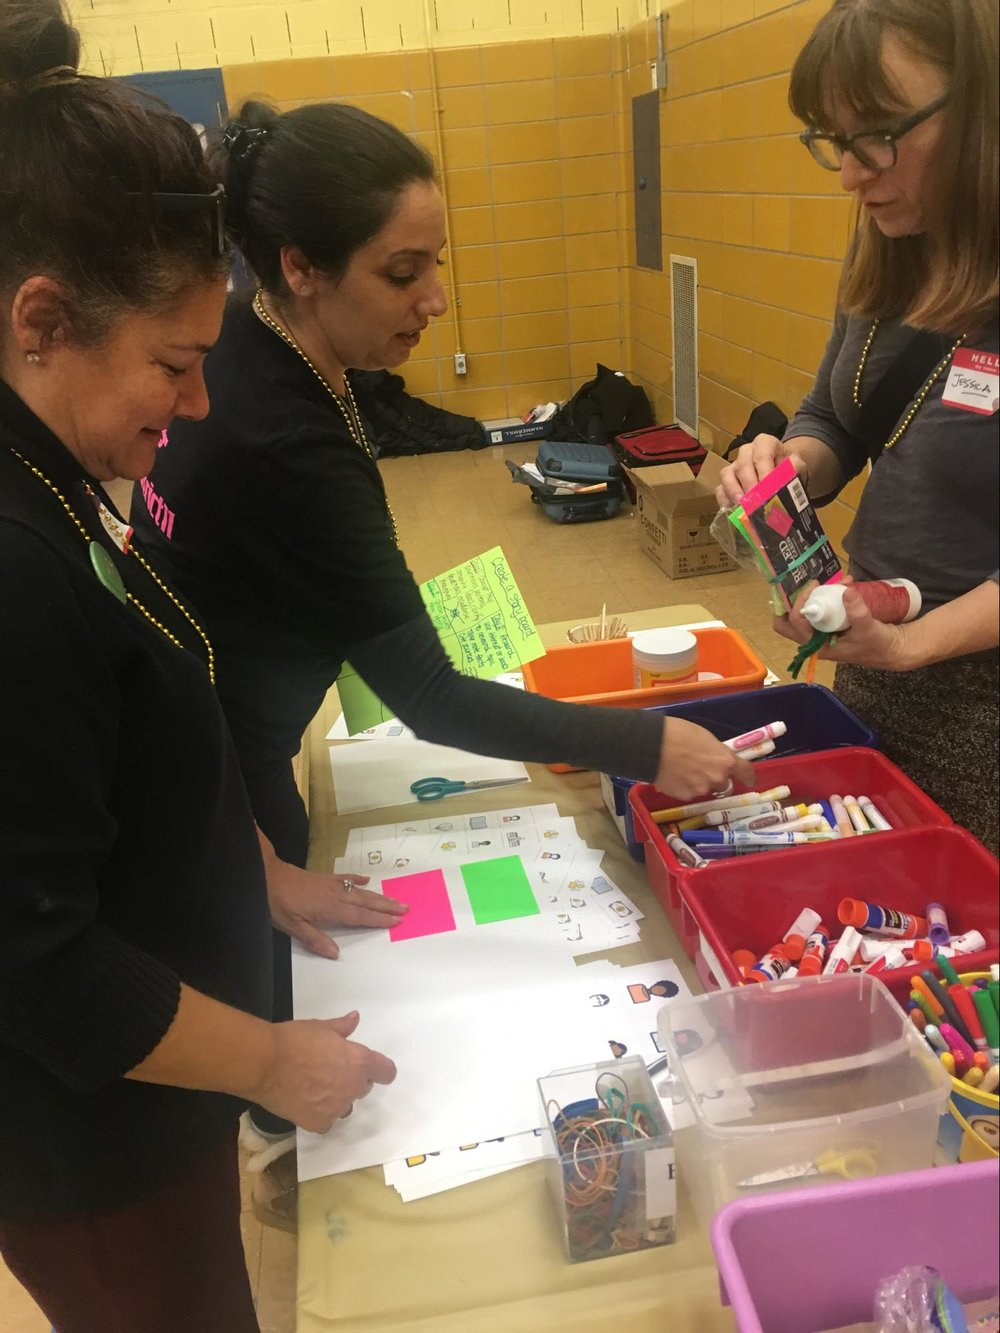 At the Innovation Summit, teachers were able to engage with rapid, interactive prototyping activities to build an idea they've been thinking about and get tangible quickly.